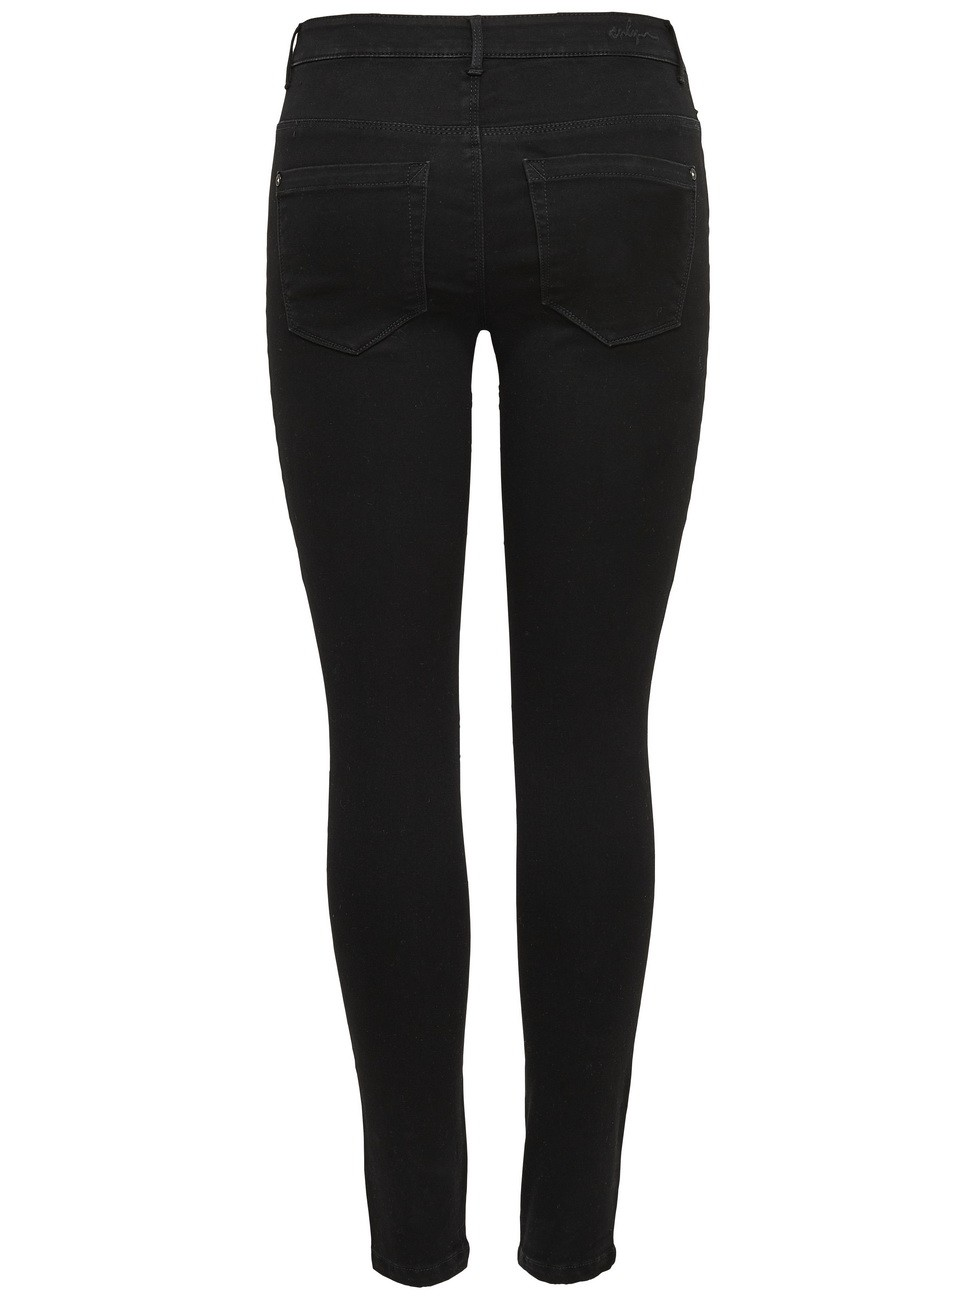 Only Damen Jeans onlROYAL RG SK ZIPC AN JNS PIM600 - Skinny Fit - Schwarz - Black